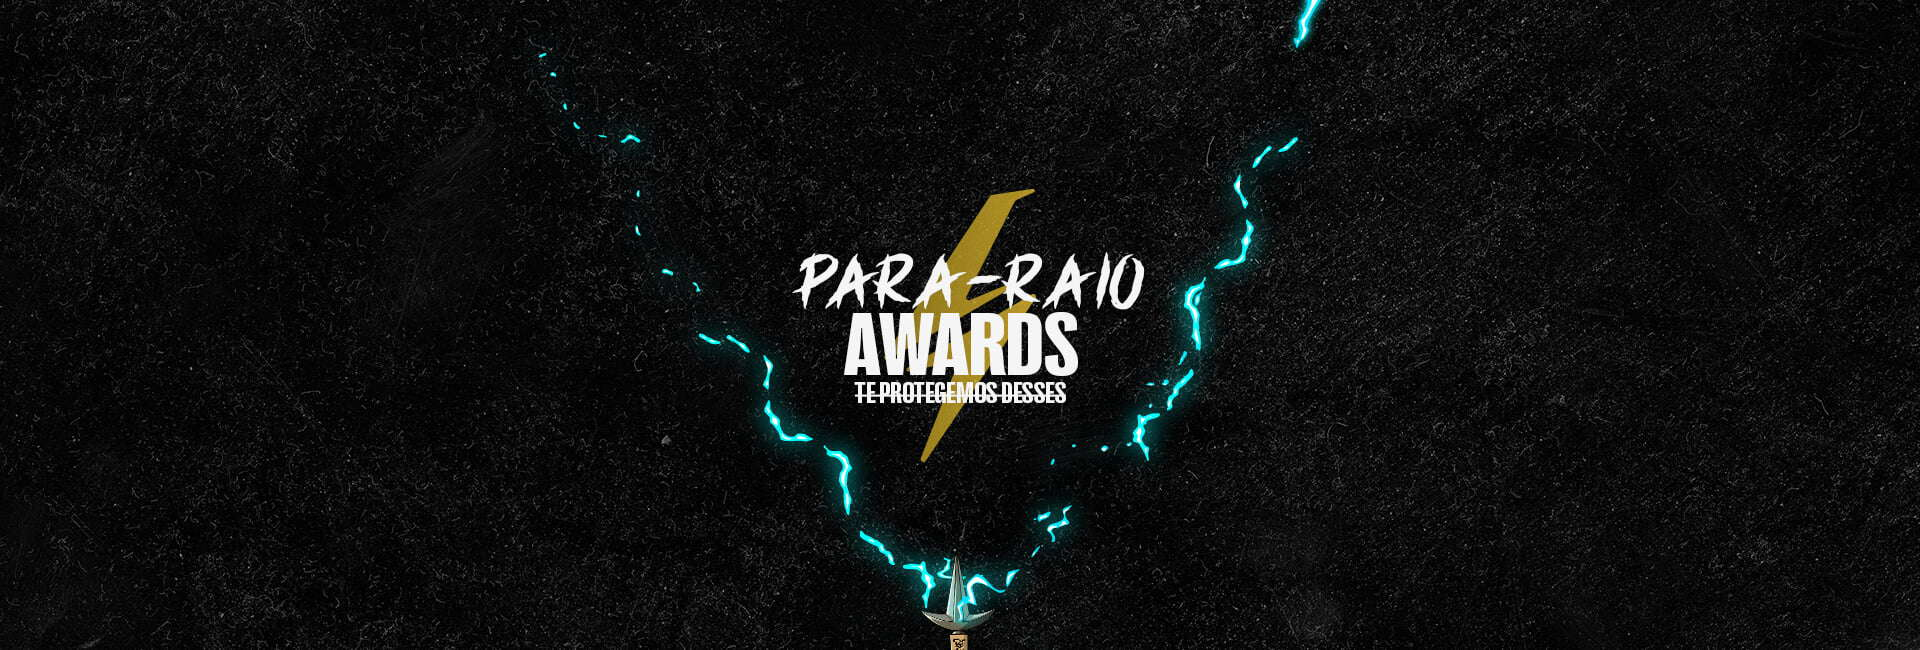 capa do para raio awards 2021